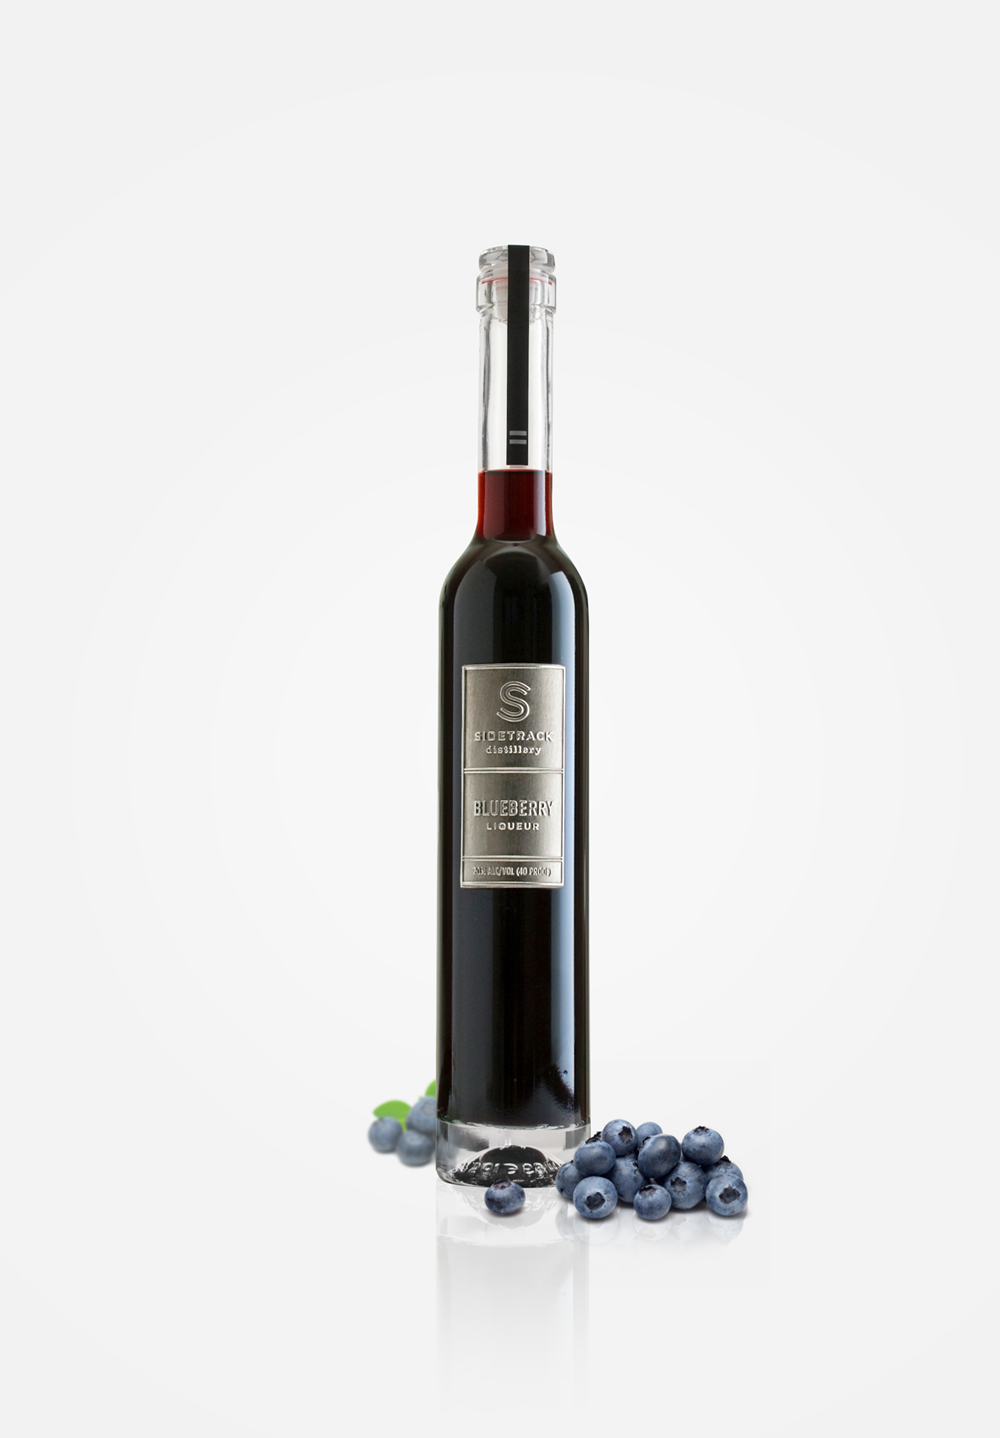 Blueberry Liqueur - This liqueur infuses the sweet subtle taste of our own grown all natural berries with a touch of lemon to bring out the full flavor. Sweet but not too sweet, this fruit forward liqueur is a natural digestif or can be used to create unique cocktails and delicious desserts.